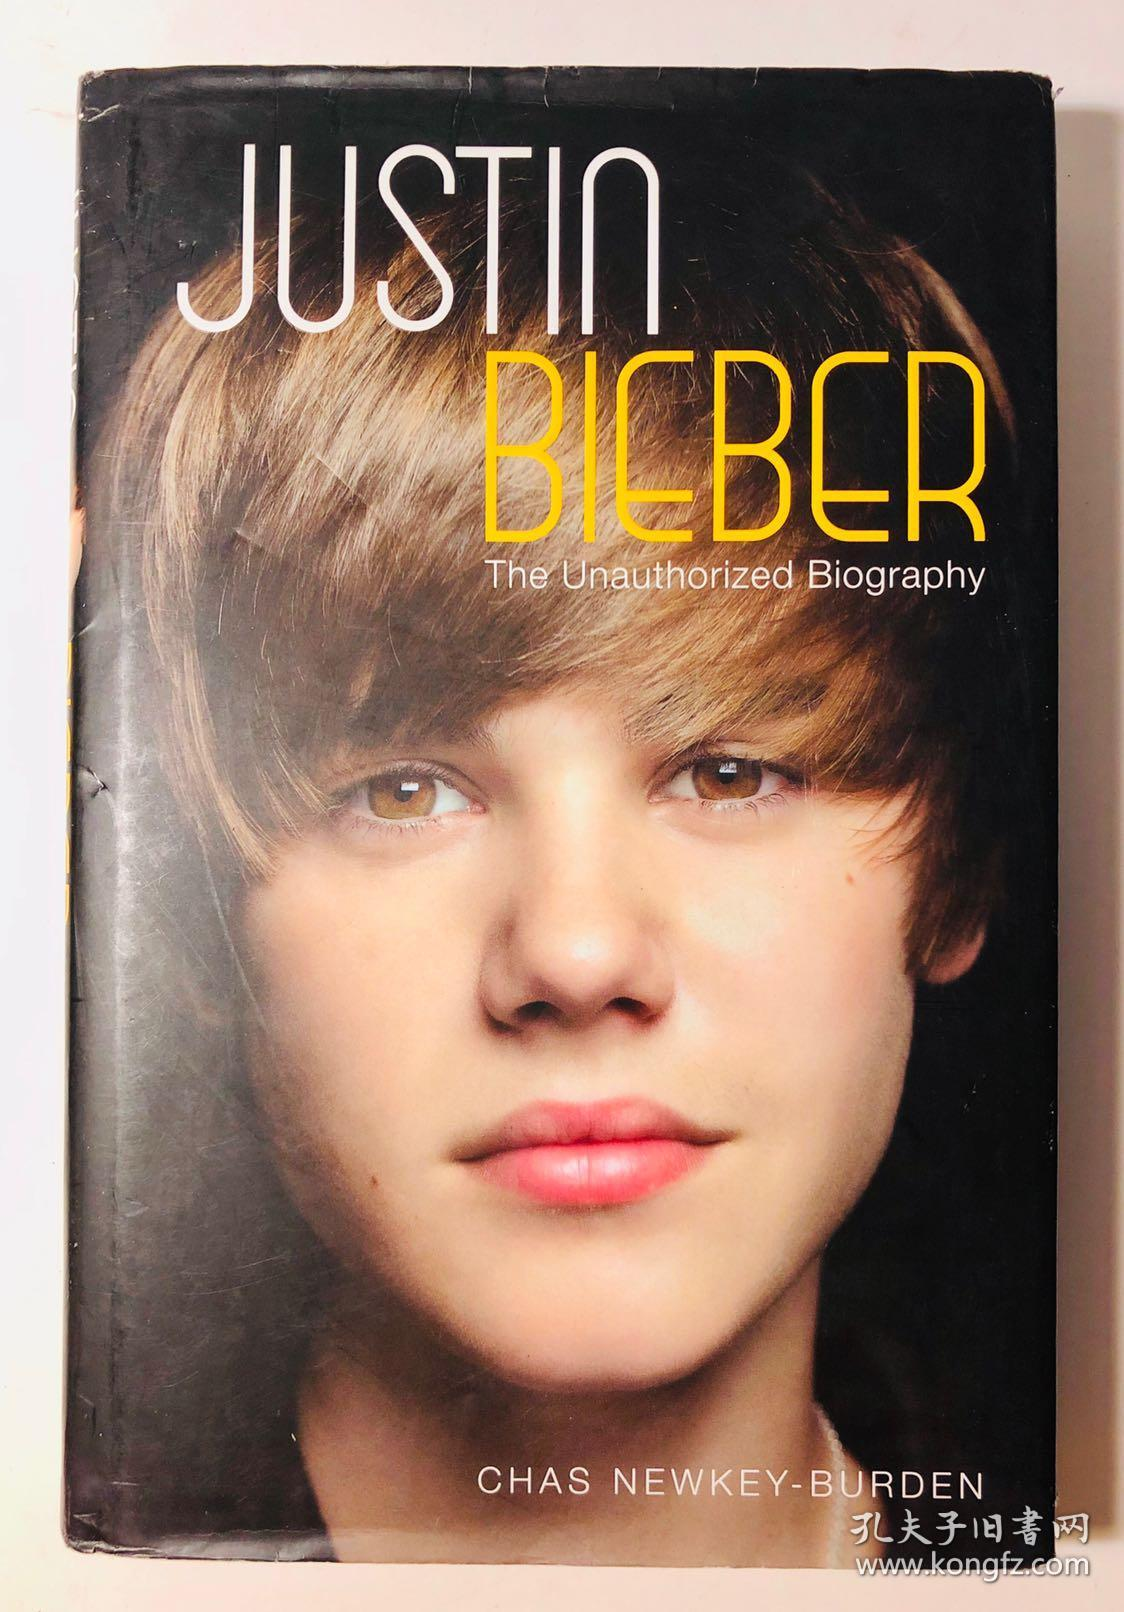 JUSTIN BIEBER (The Unauthorized Biography)